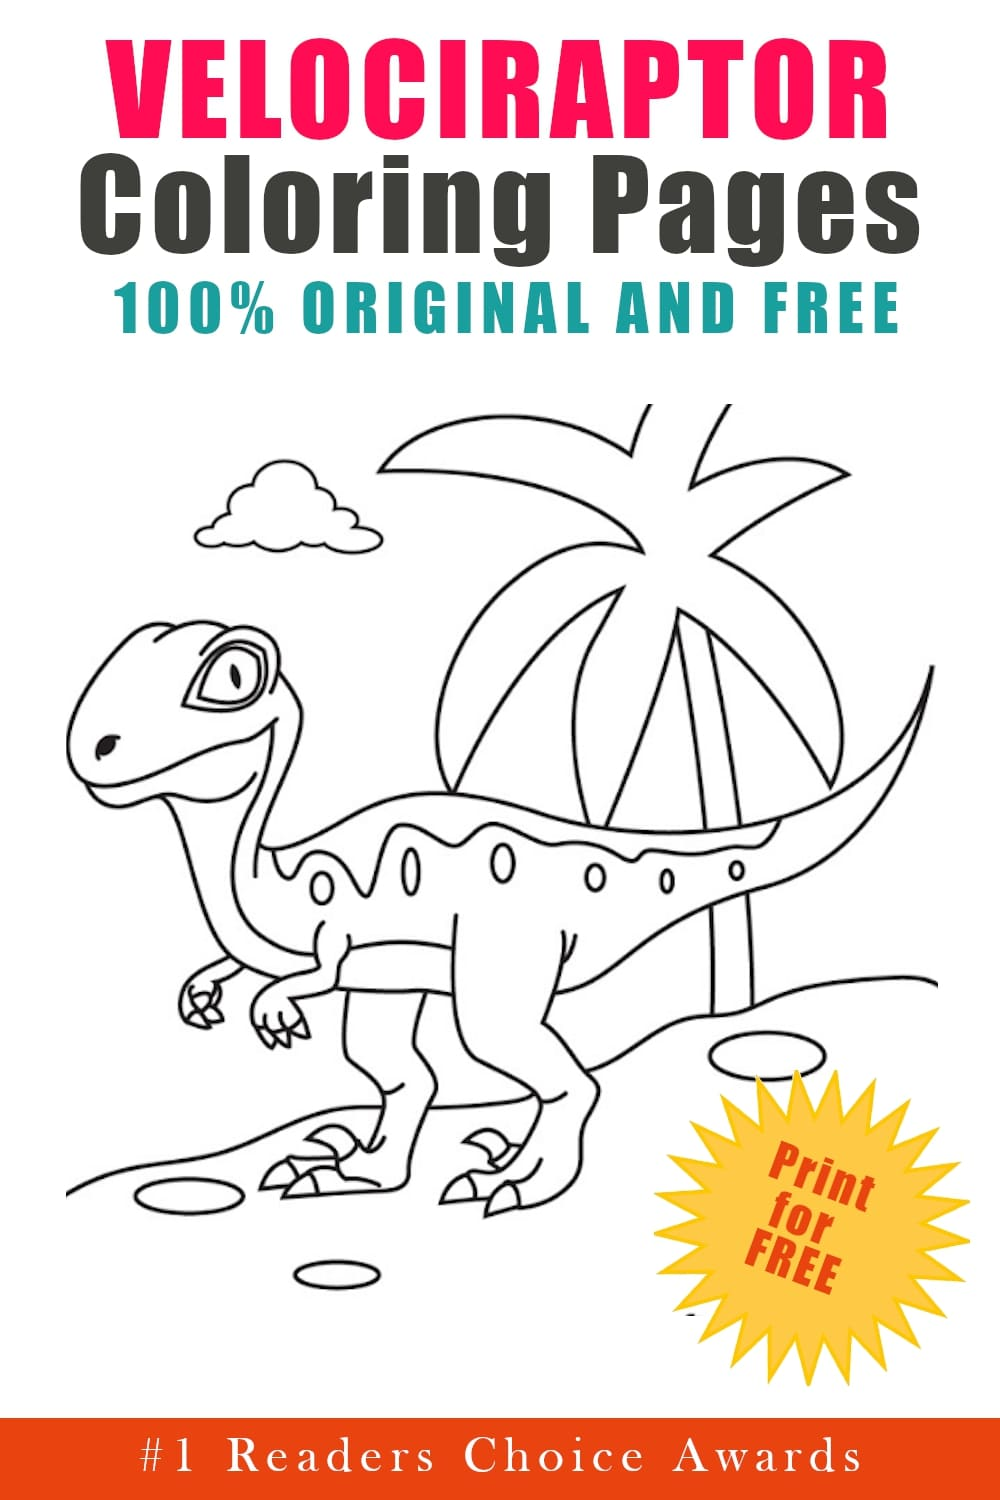 original and free velociraptor coloring pages